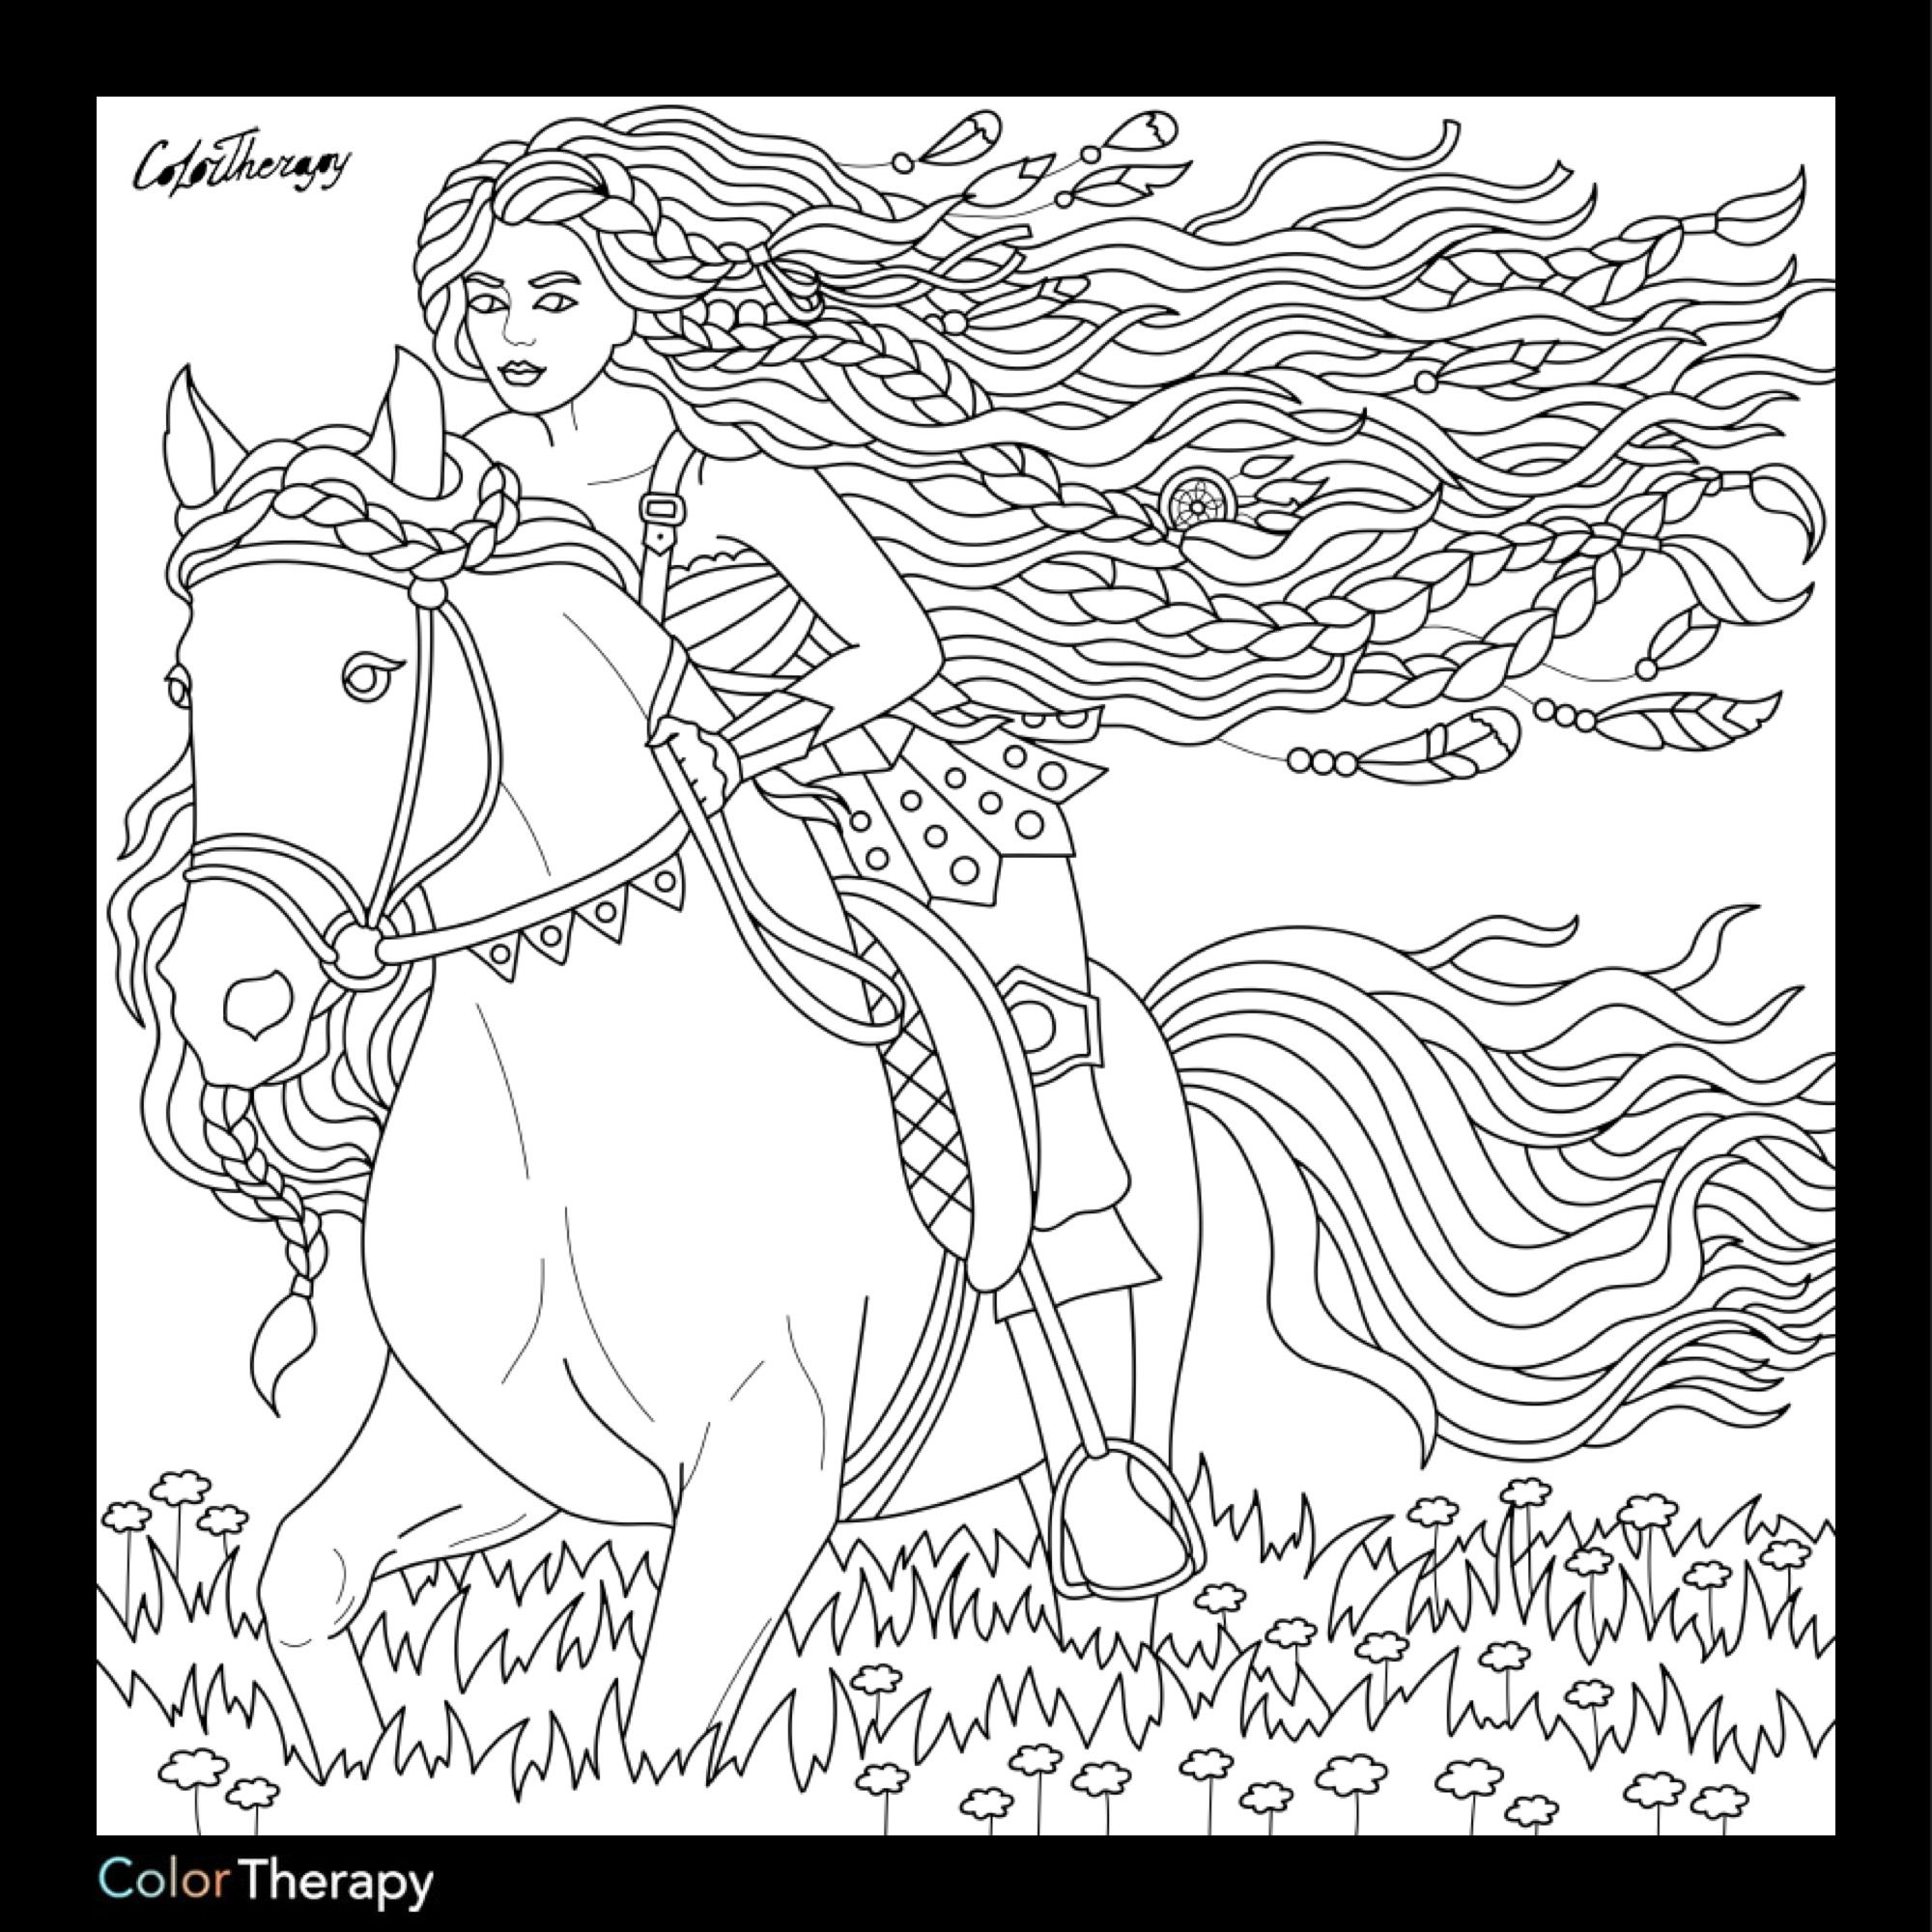 on horseback coloring page coloring pages for adults